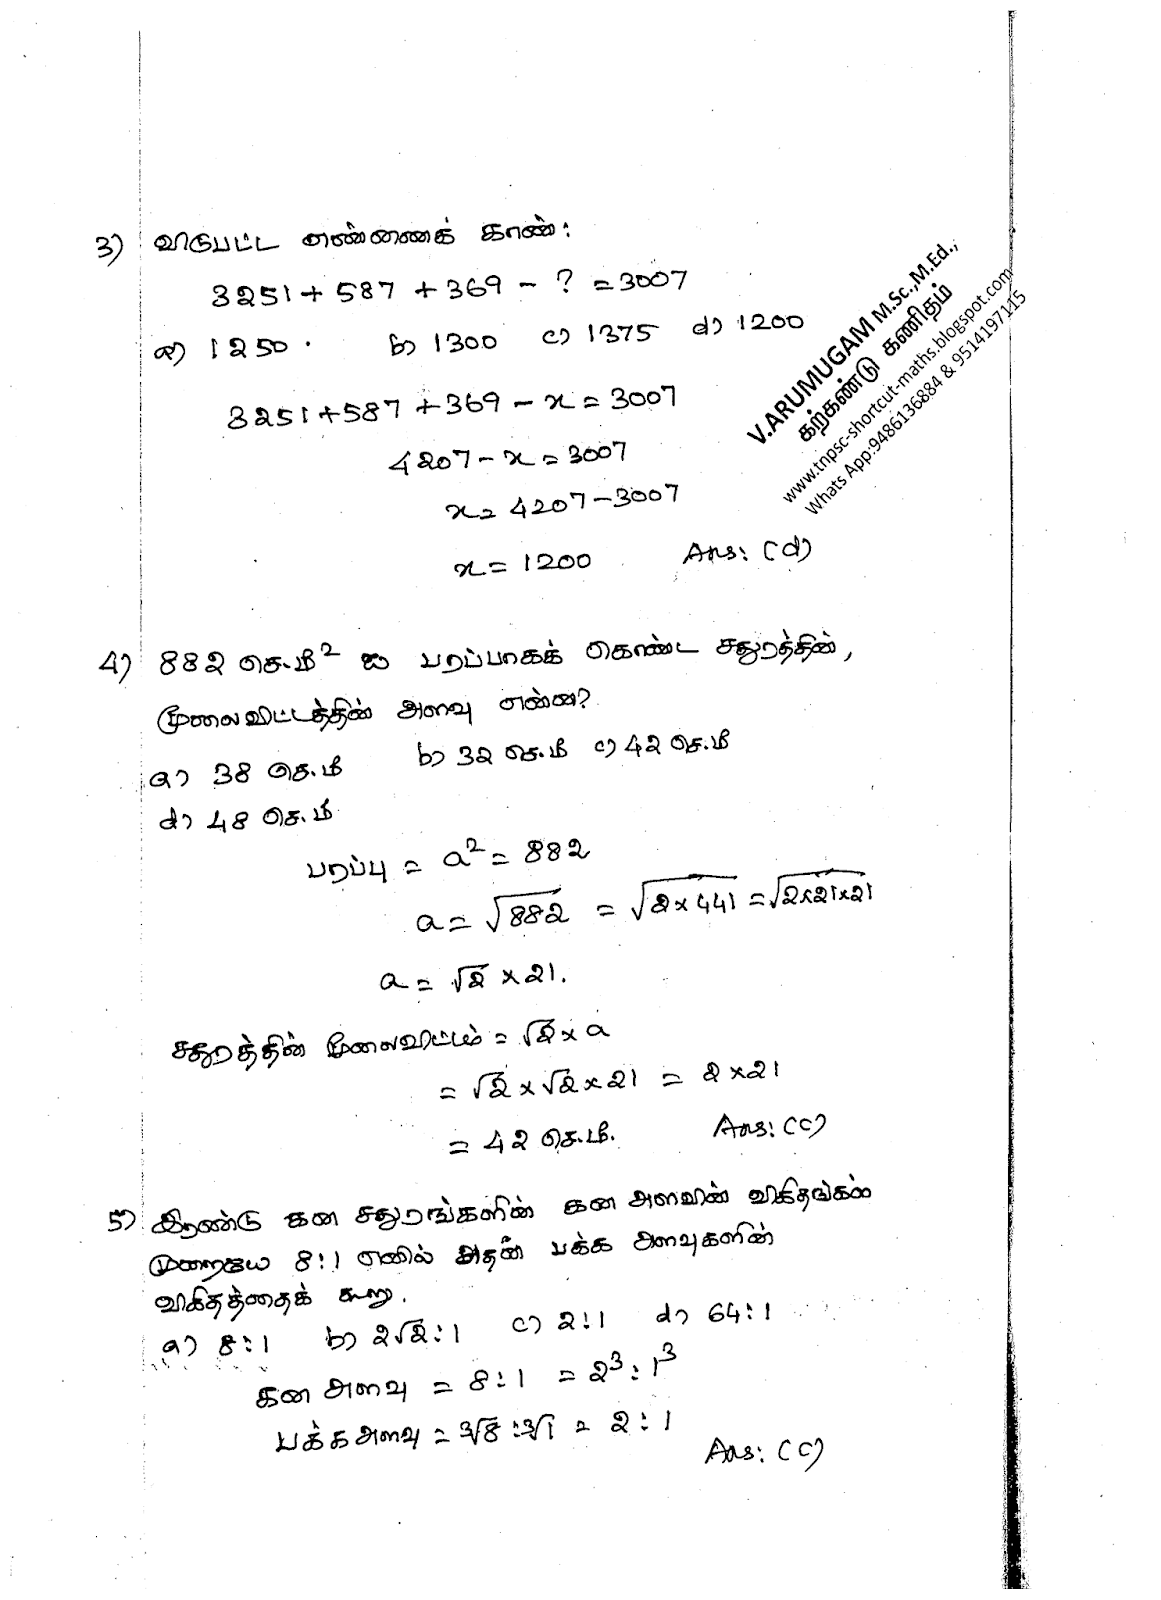 TNPSC – 2019 - Assistant Training Officer (Stenography-English and Secretarial Practice) in Tamil Nadu Employment and Training Subordinate Service, 2014-2019 EXAM - EXAM DATE: 22.06.2019